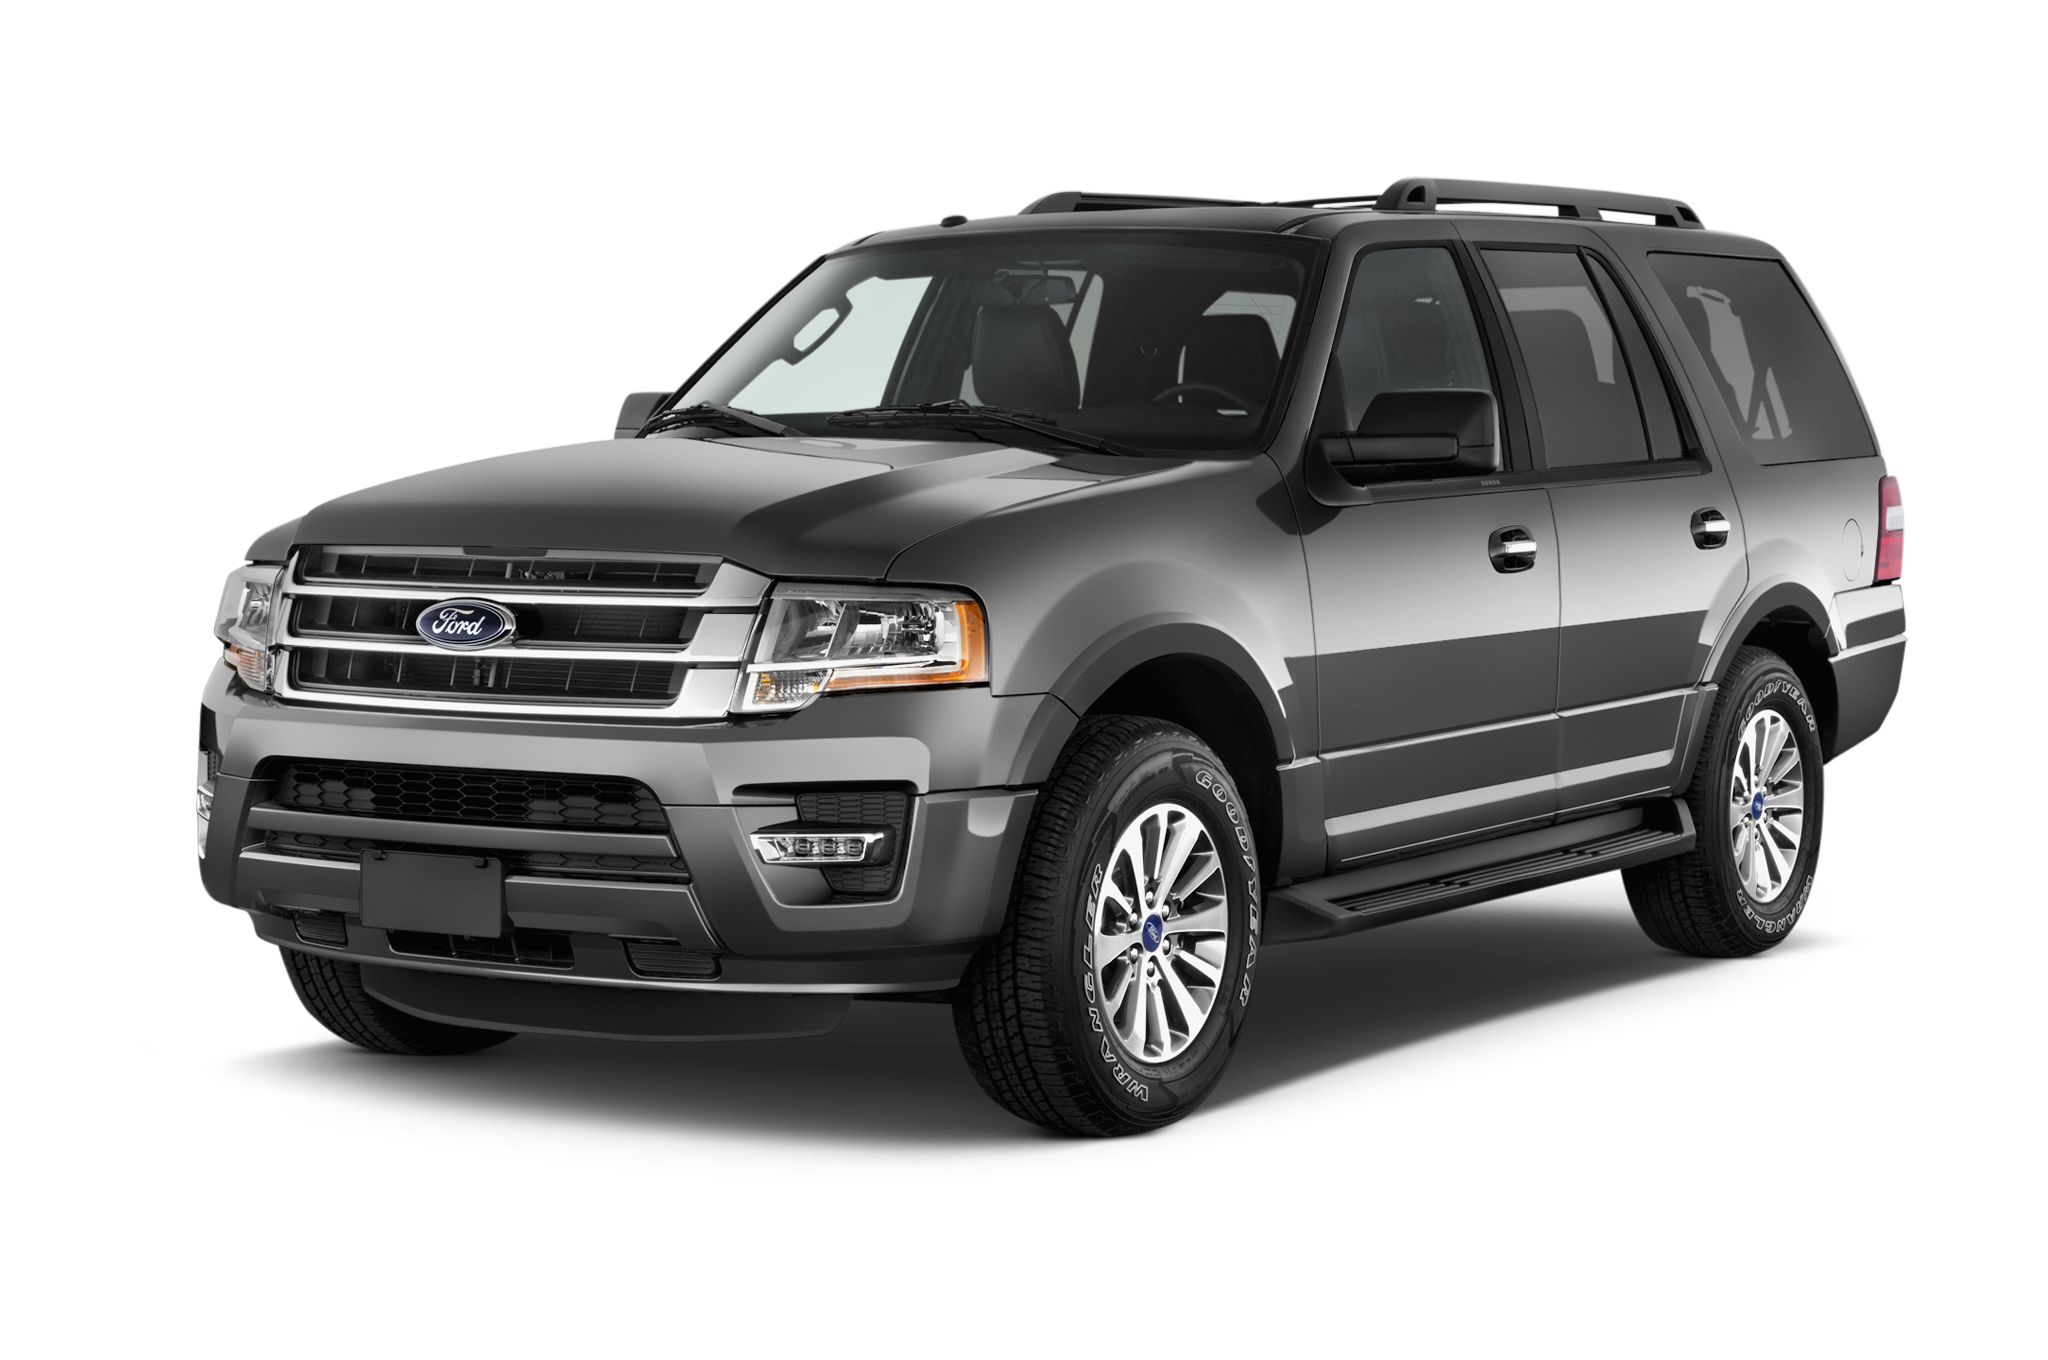 2017 ford expedition png